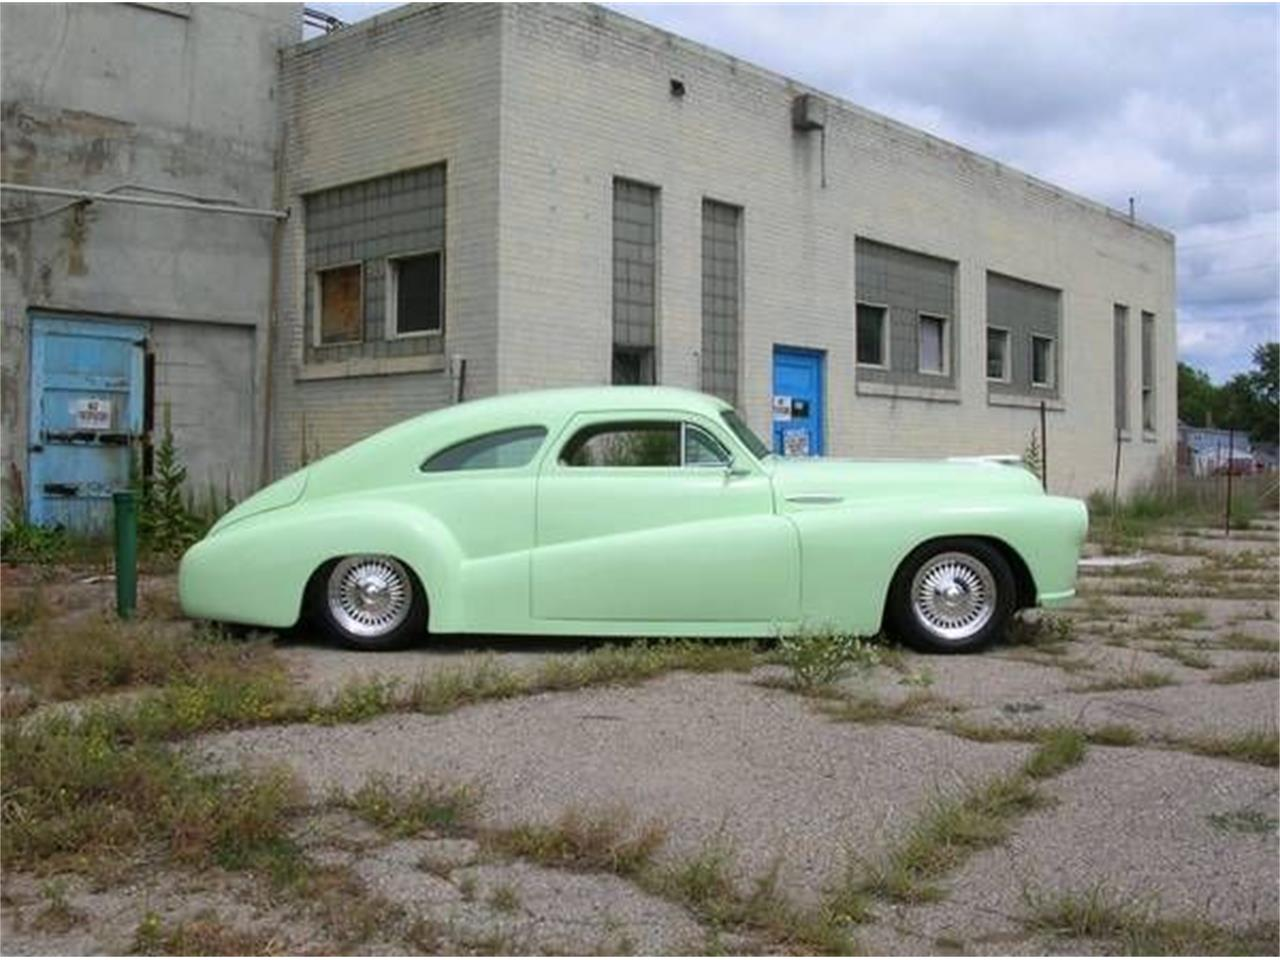 1942 Buick Street Rod for sale in Cadillac, MI – photo 2